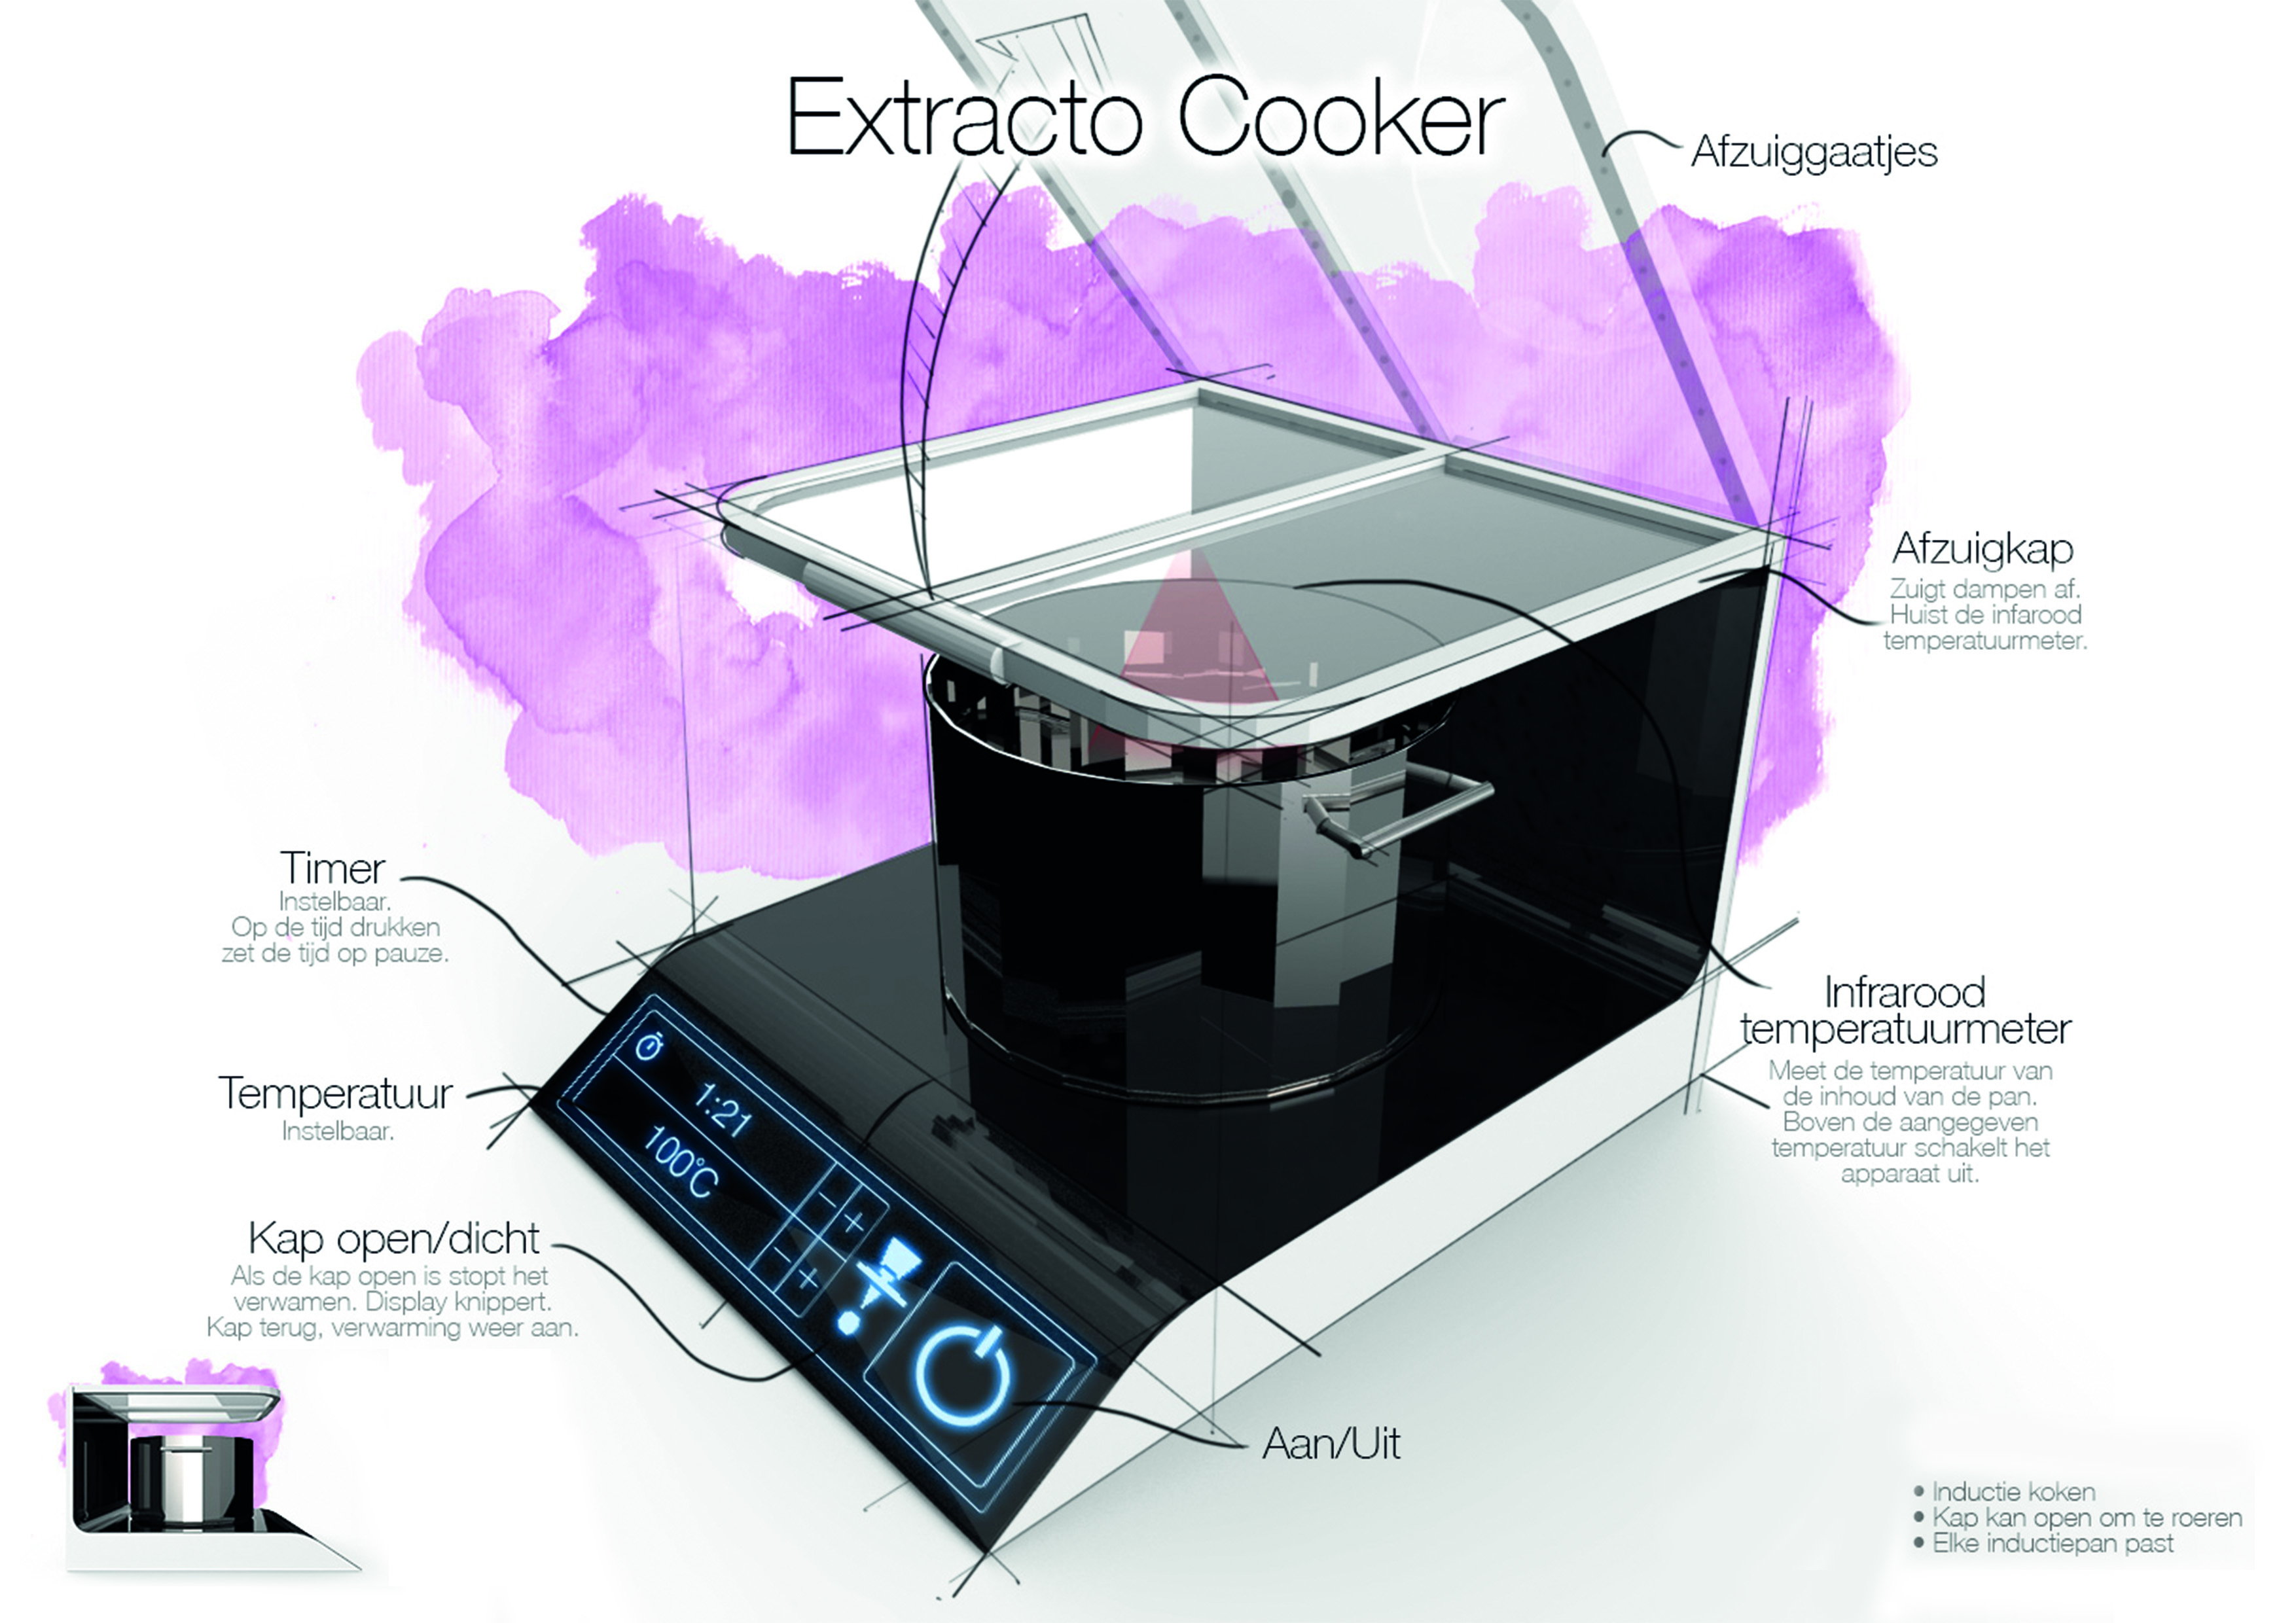 Extracto Cooker concept